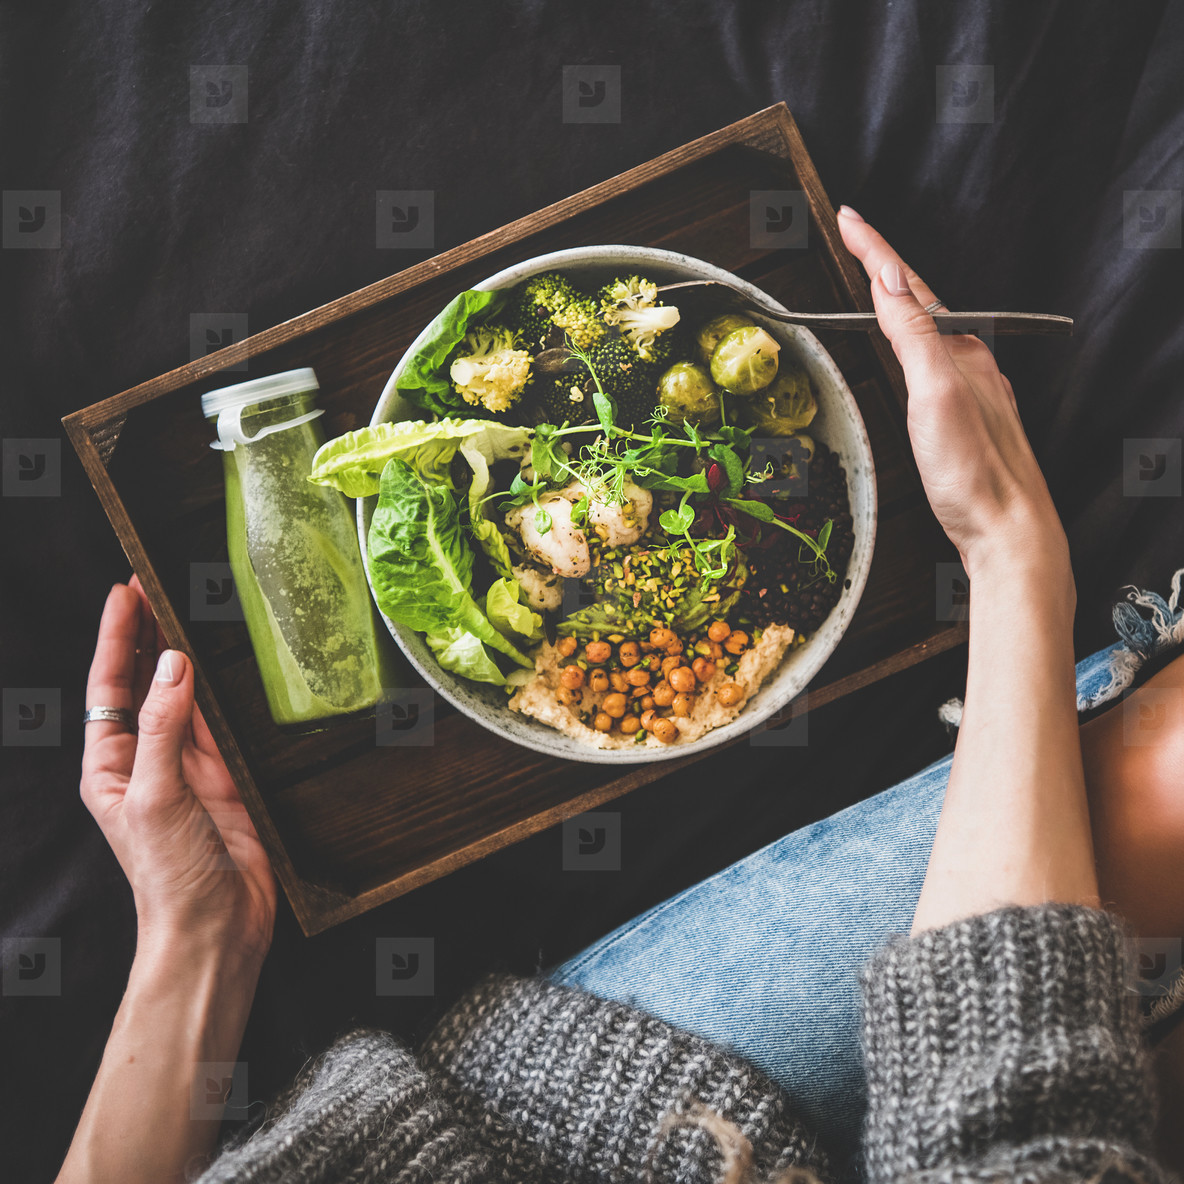 Healthy vegan bowl  smoothie and woman in jeans  square crop